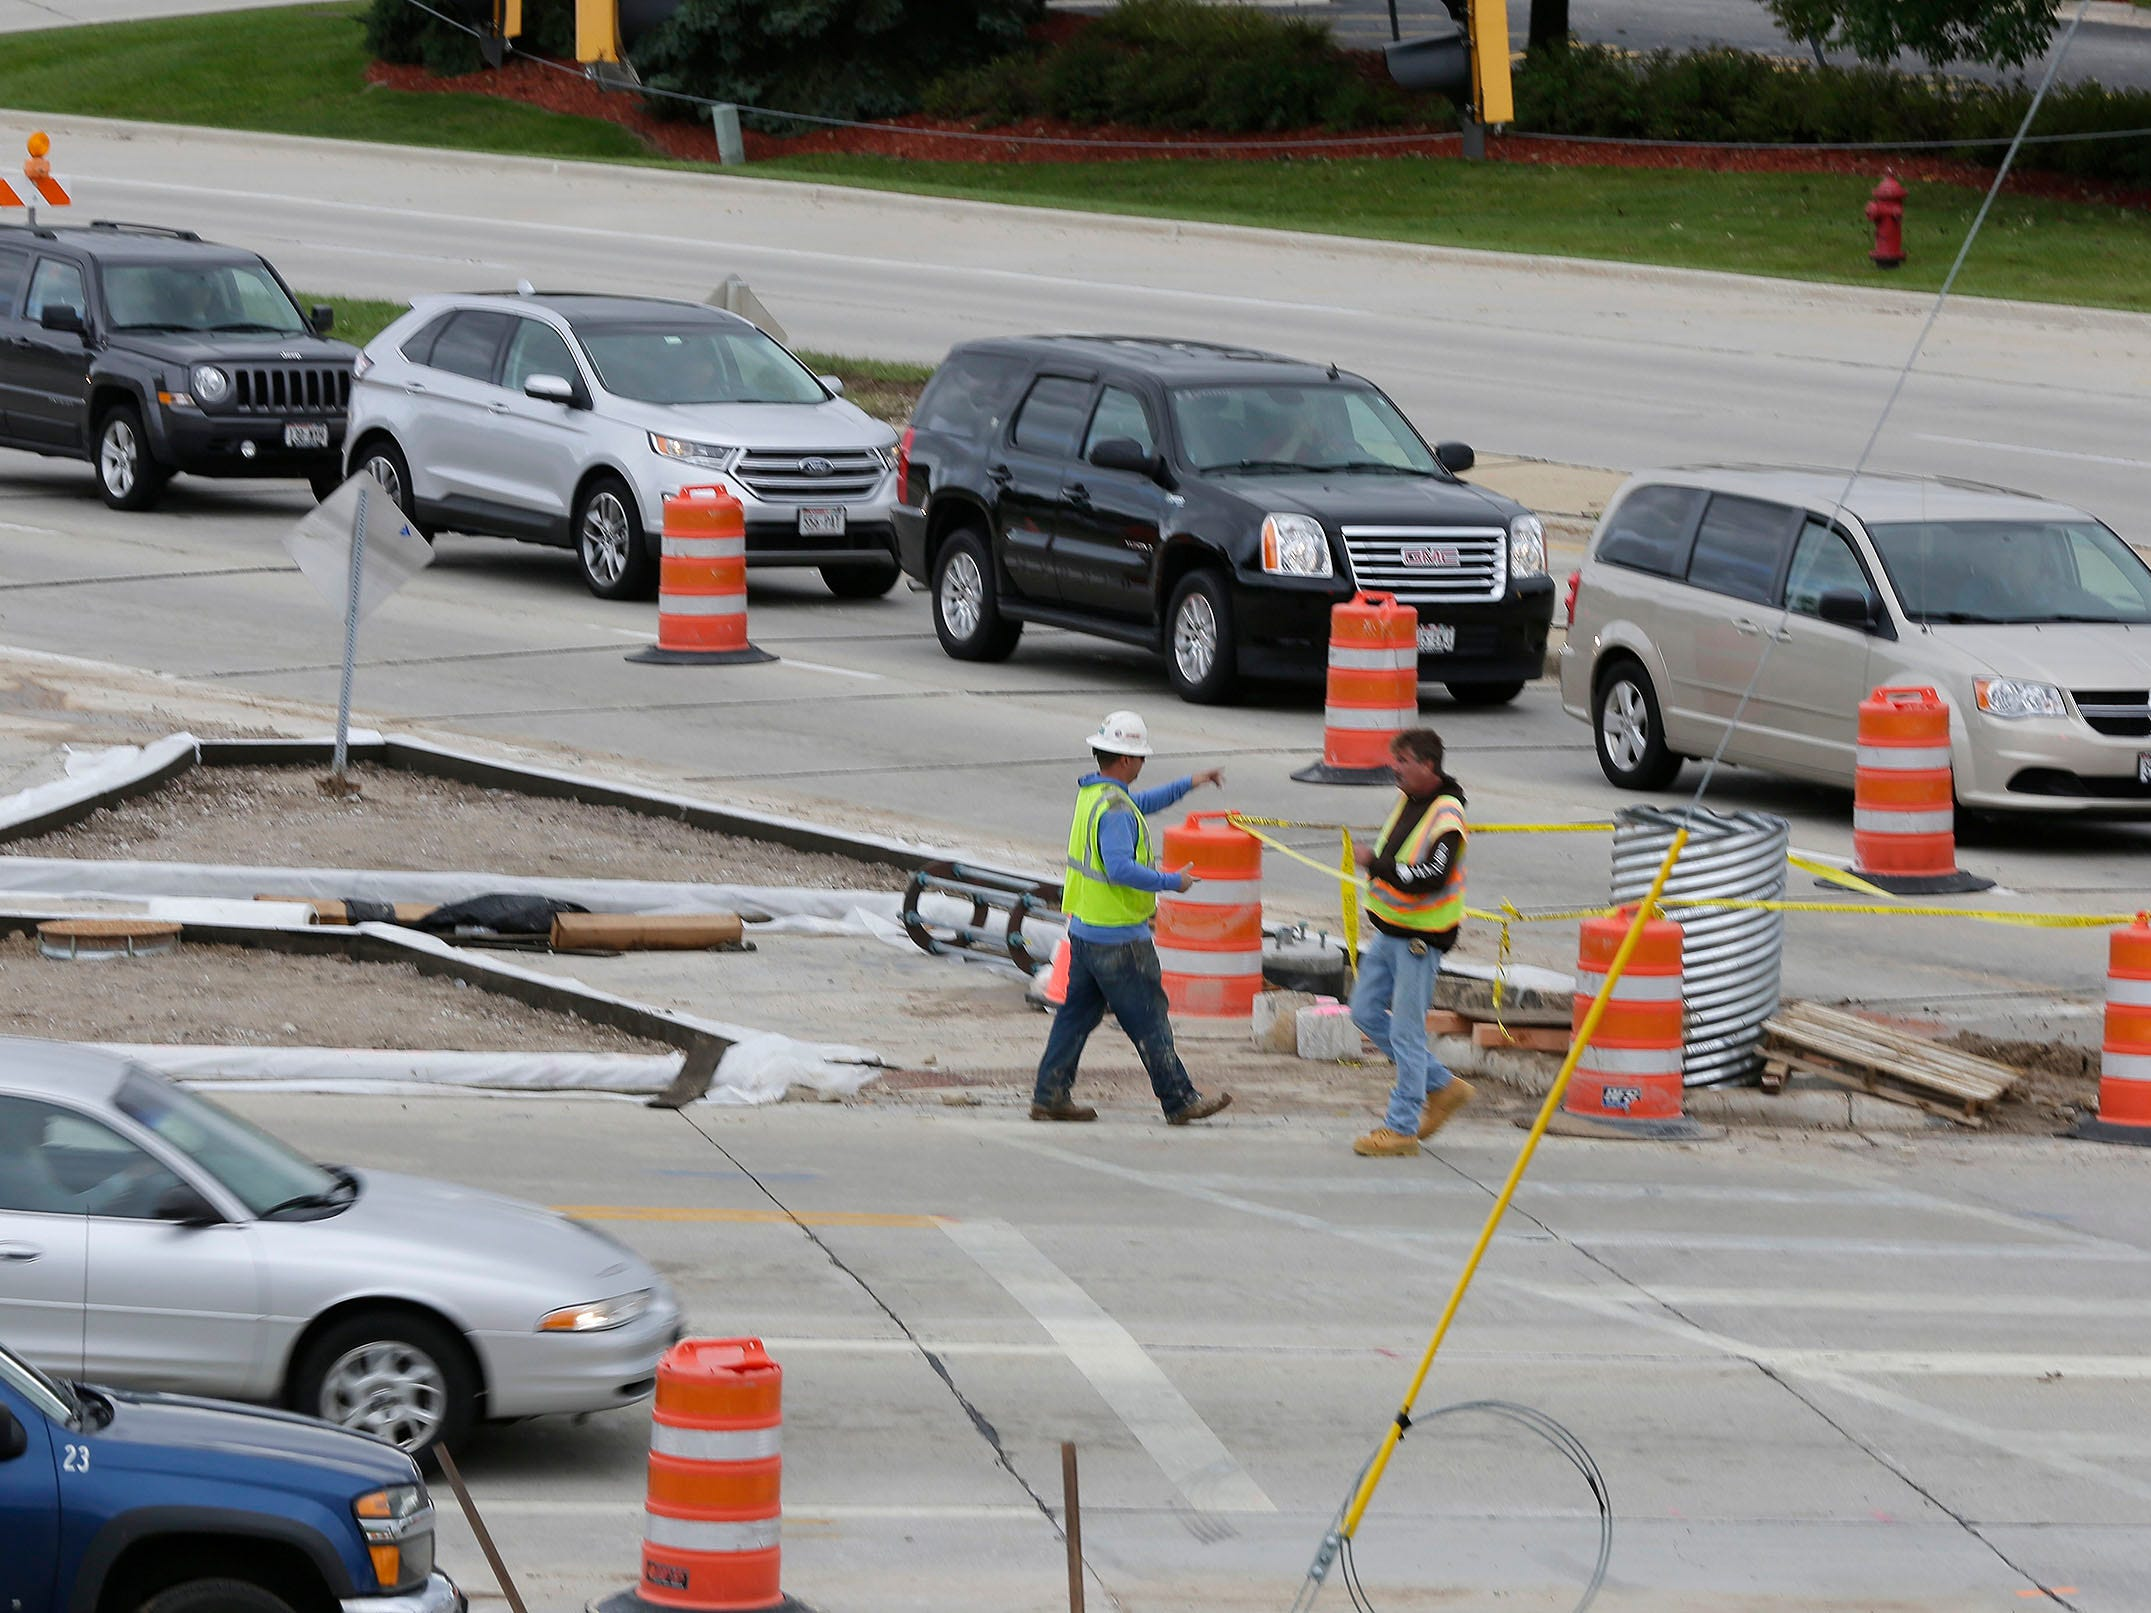 Cars line up on Taylor Drive at Erie Avenue as a pair of construction workers greet each other, Tuesday, October 2, 2018, in Sheboygan, Wis. Motorists are urged to be careful in work zones.